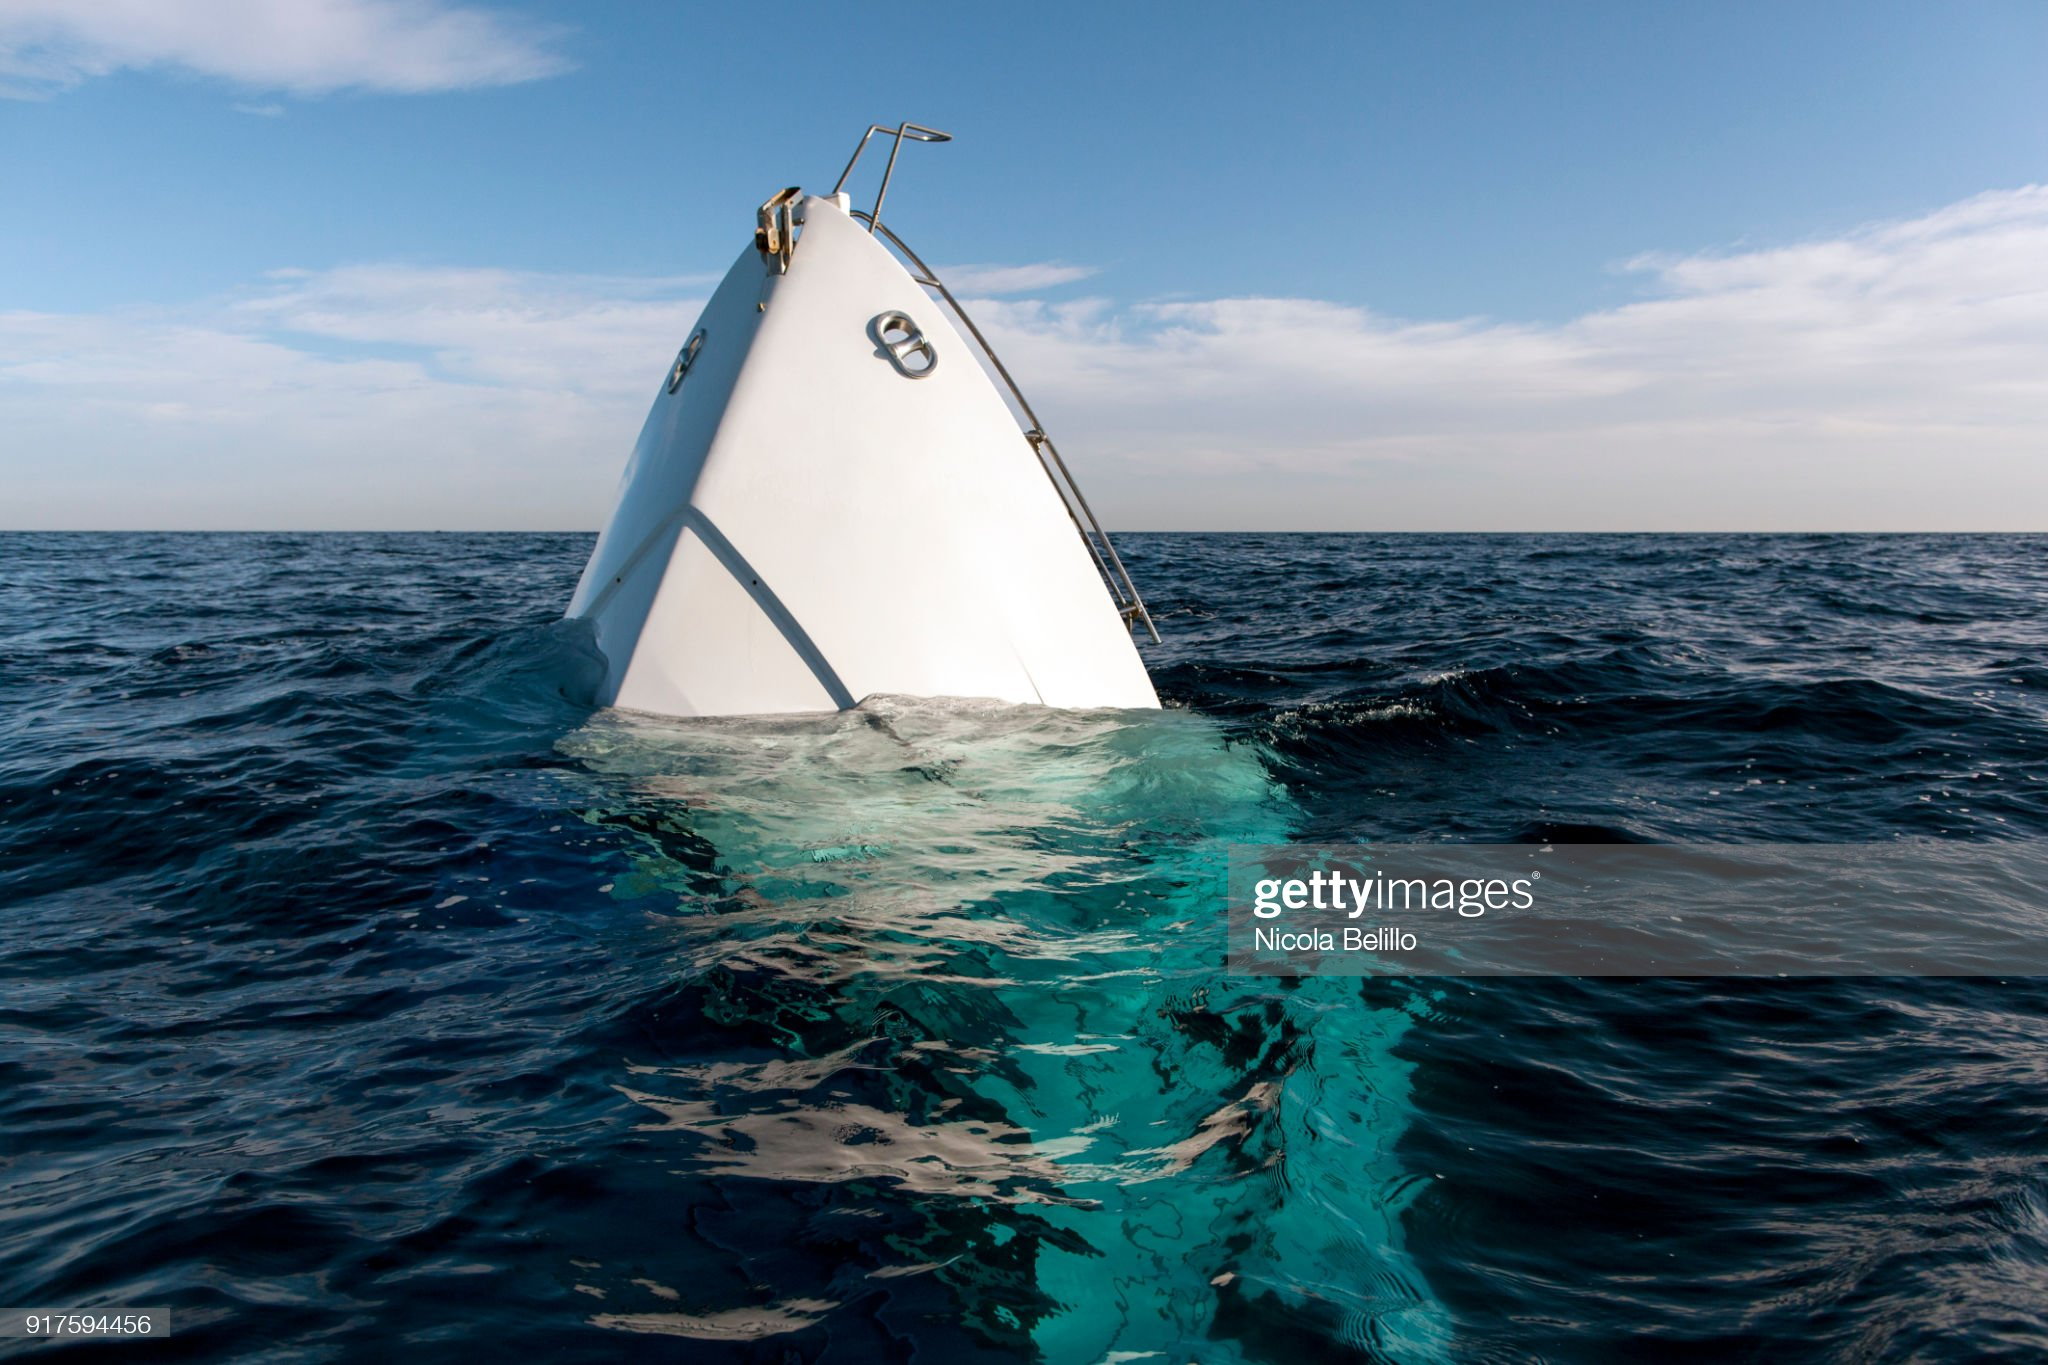 sinking boat : Stock Photo